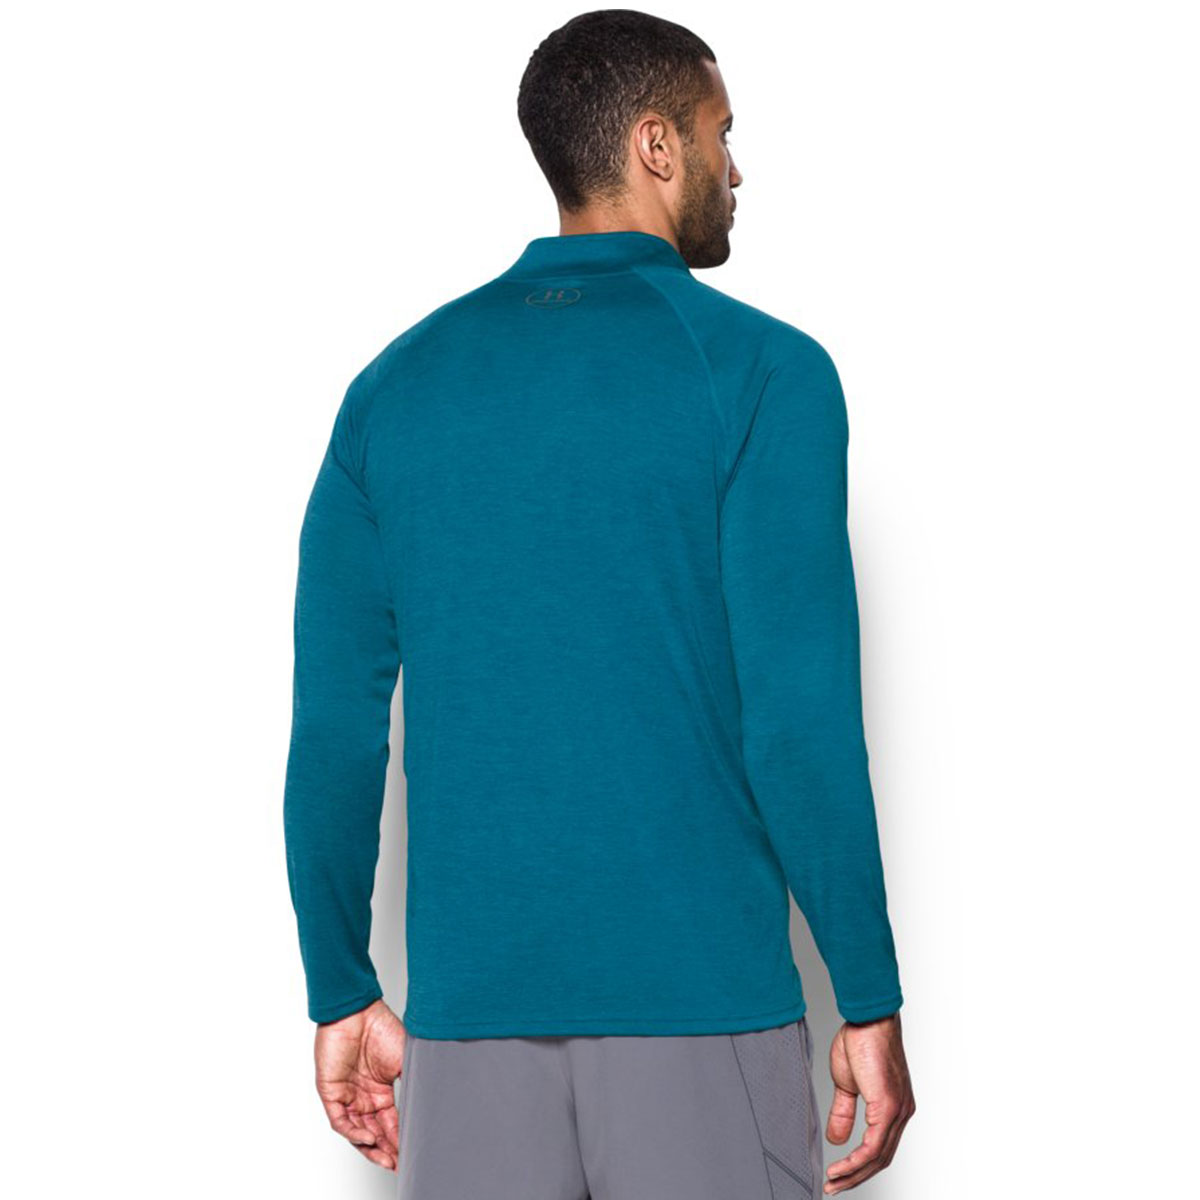 Under-Armour-Mens-UA-Tech-1-4-Zip-Long-Sleeve-Top-Workout-Layer-27-OFF-RRP thumbnail 11